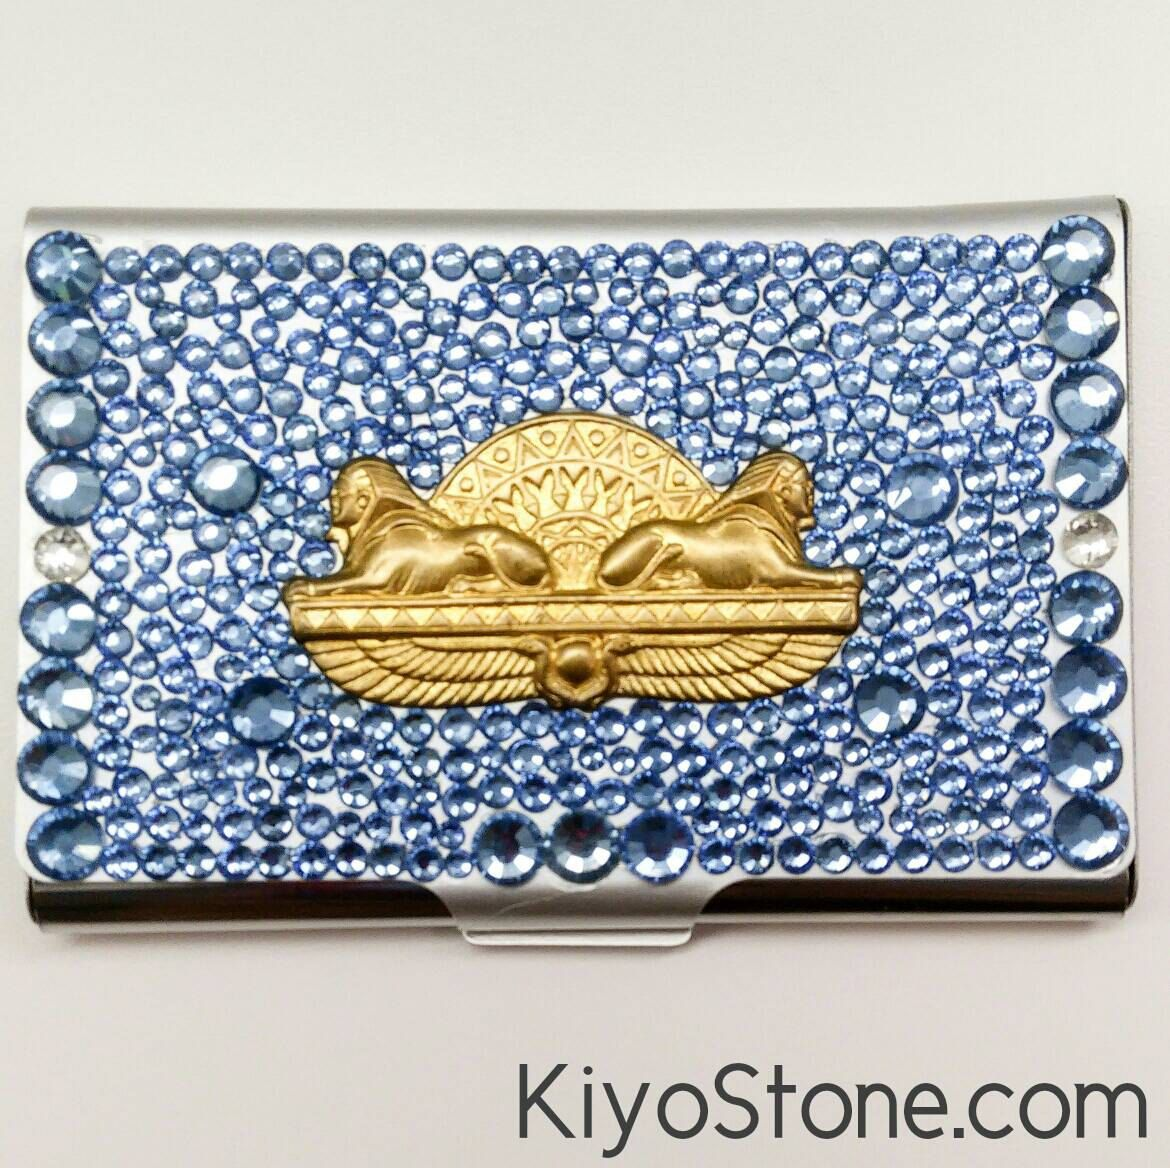 Blue and gold egyptian sphinx bling rhinestone business card case blue and gold egyptian sphinx bling rhinestone business card caseholder decoden jewel http colourmoves Image collections